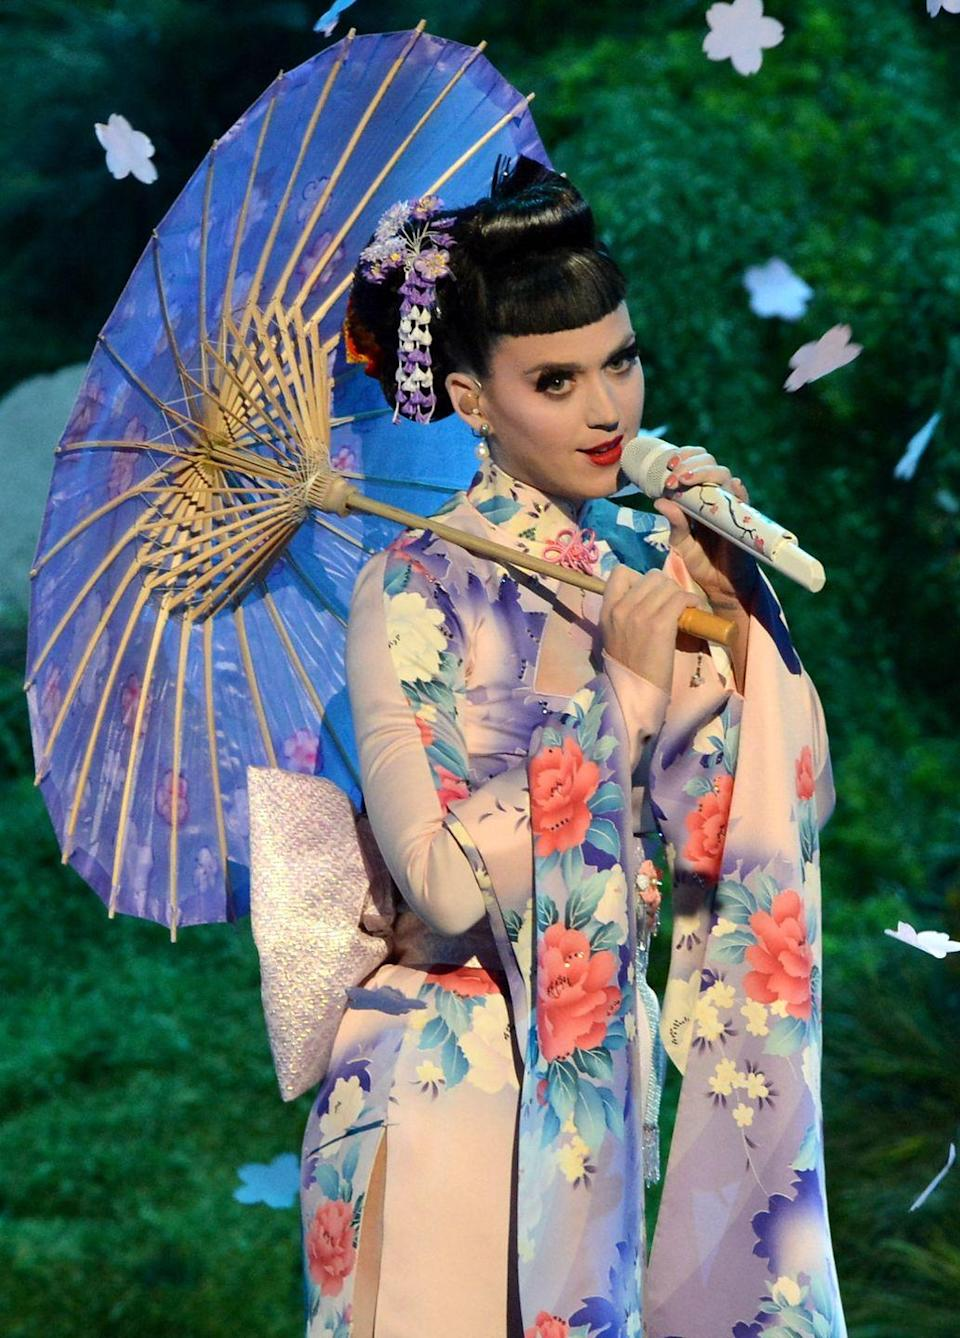 """<p>Katy Perry brought a """"geisha-inspired"""" look to her performance of """"Unconditionally"""" at the 2013 American Music Awards. Nolan Feeney at <em>The Atlantic</em> criticized her performance, writing, """"It's these kind of stereotypical visuals that plays into white fetishization of Asian women — something Perry doesn't have to deal with when she takes off her costume."""" </p>"""